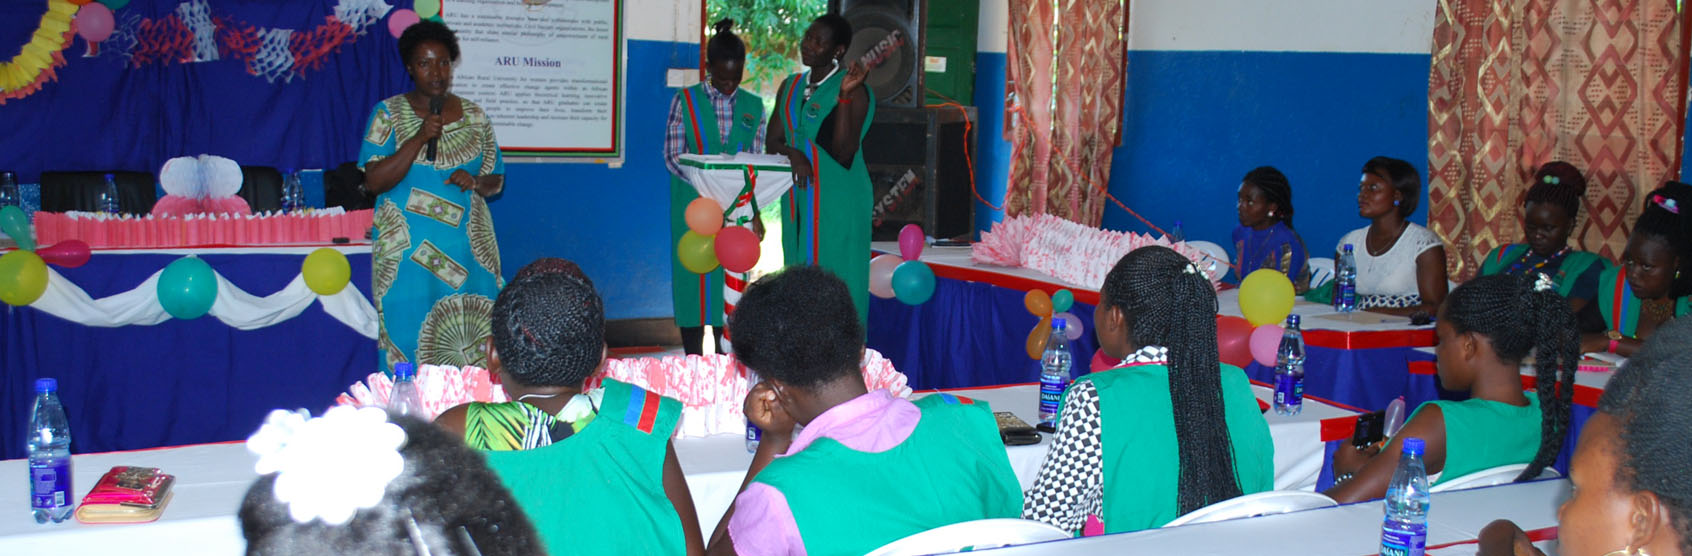 Ms. Jacqueline Akello Calls upon ARU Students to be Exemplary Leaders